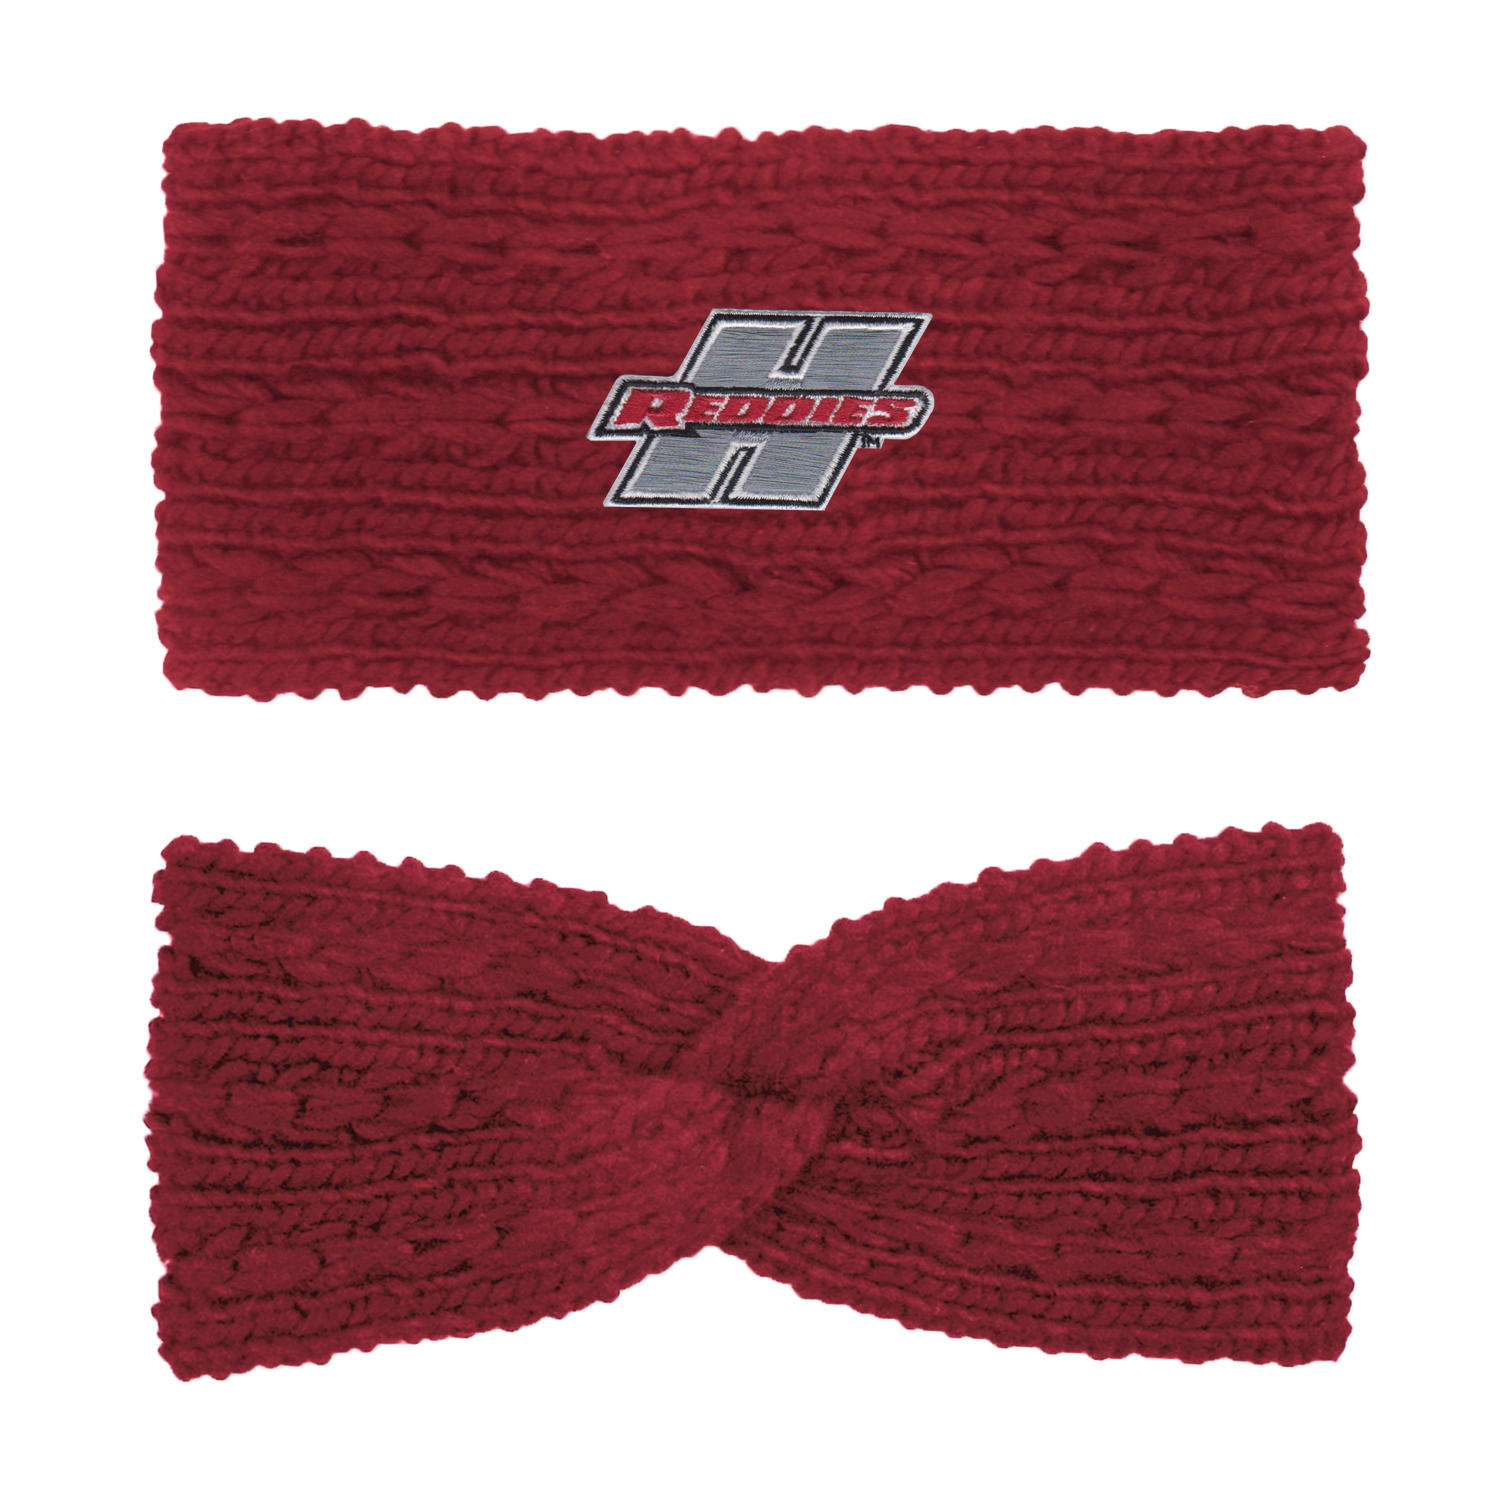 Henderson Reddies Adaline Knit Twist Ear Band